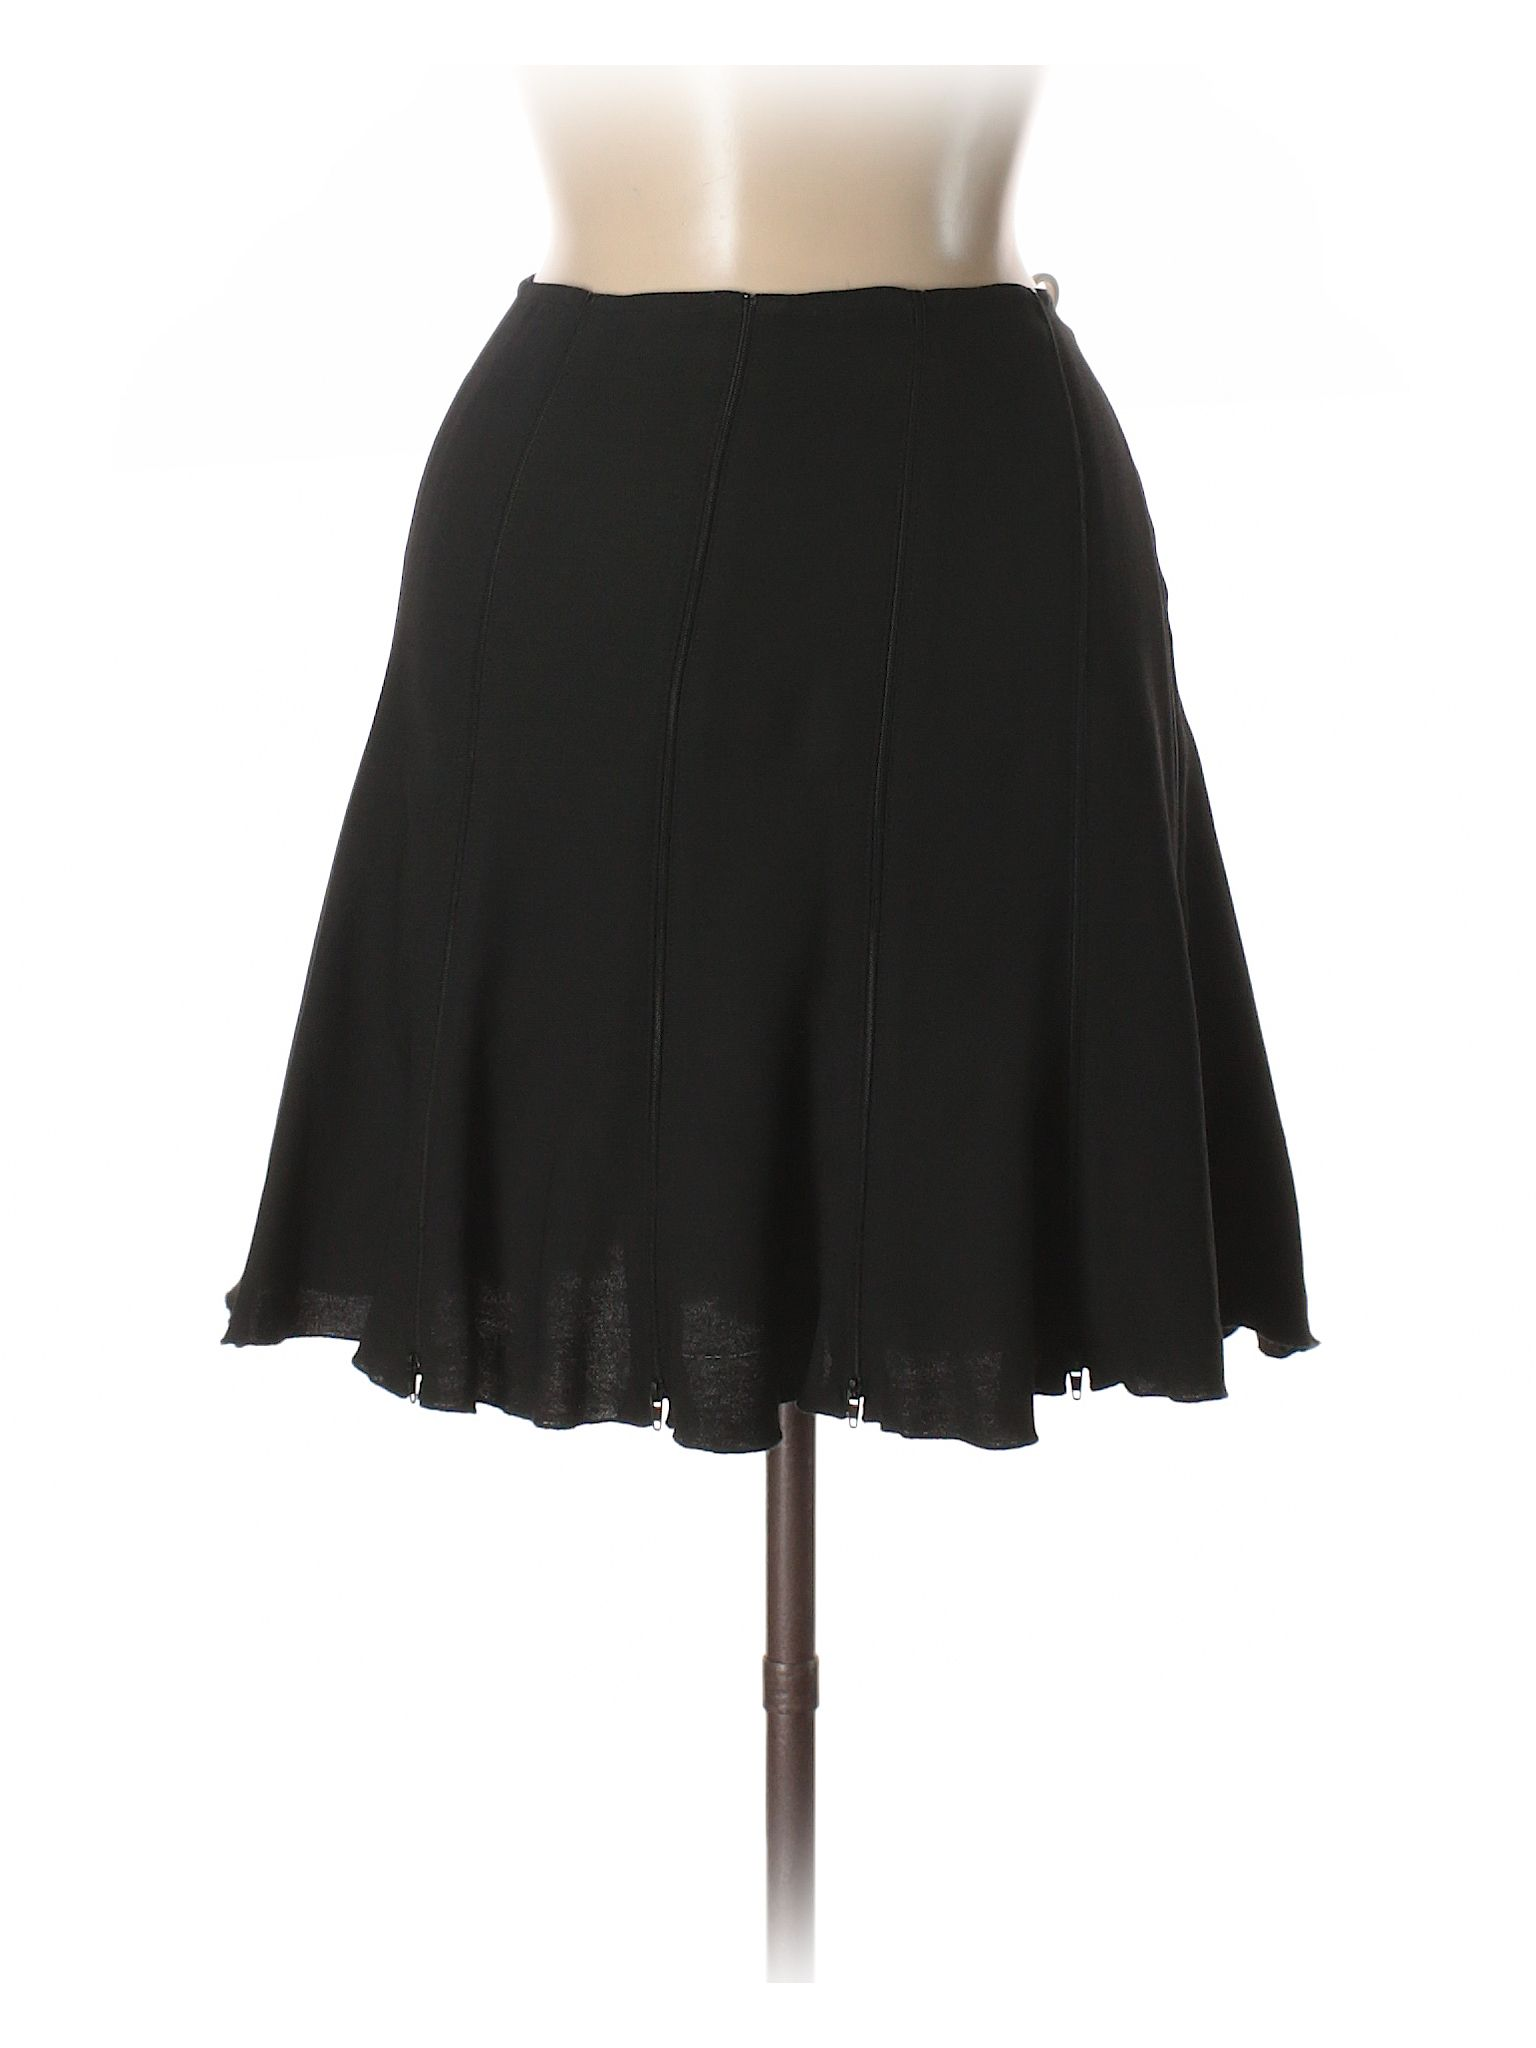 684bc7c919 Sonia by Sonia Rykiel Casual Skirt: Size 8.00 Black Women's Bottoms - $64.99